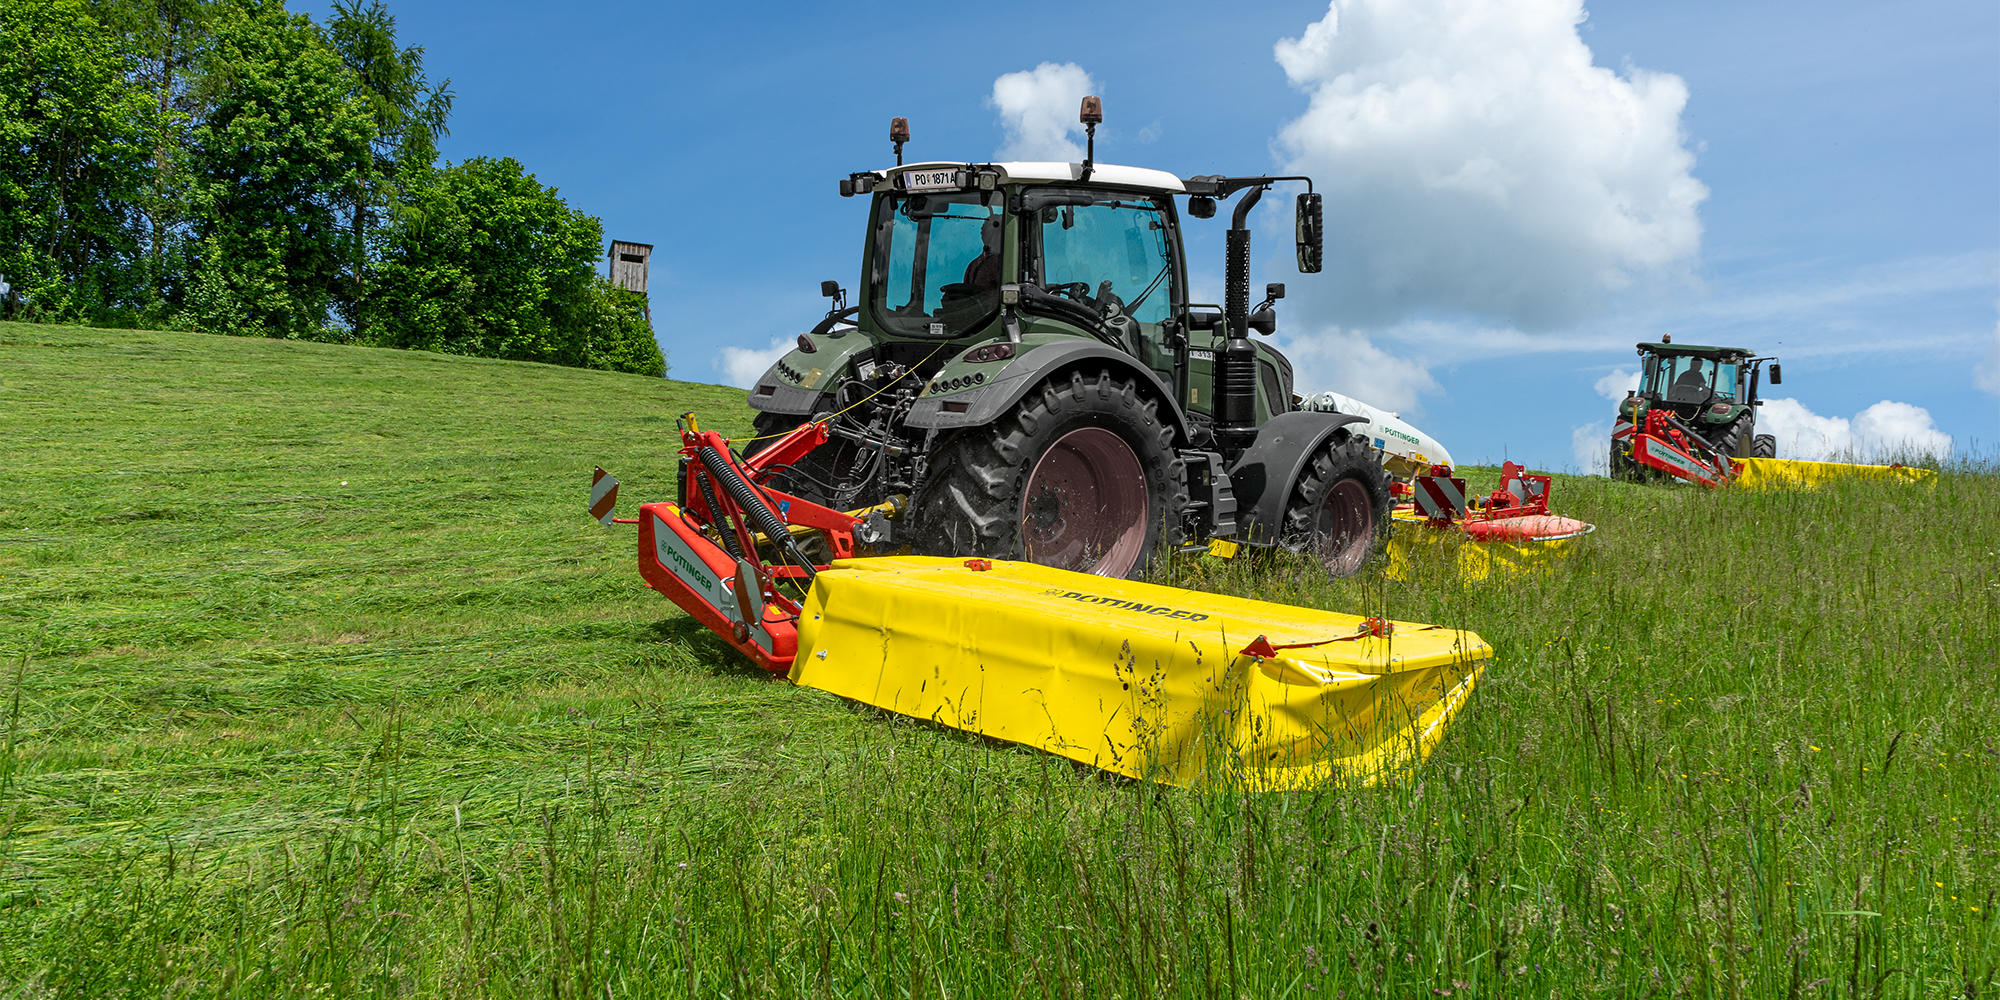 NOVADISC rear mounted disc mowers